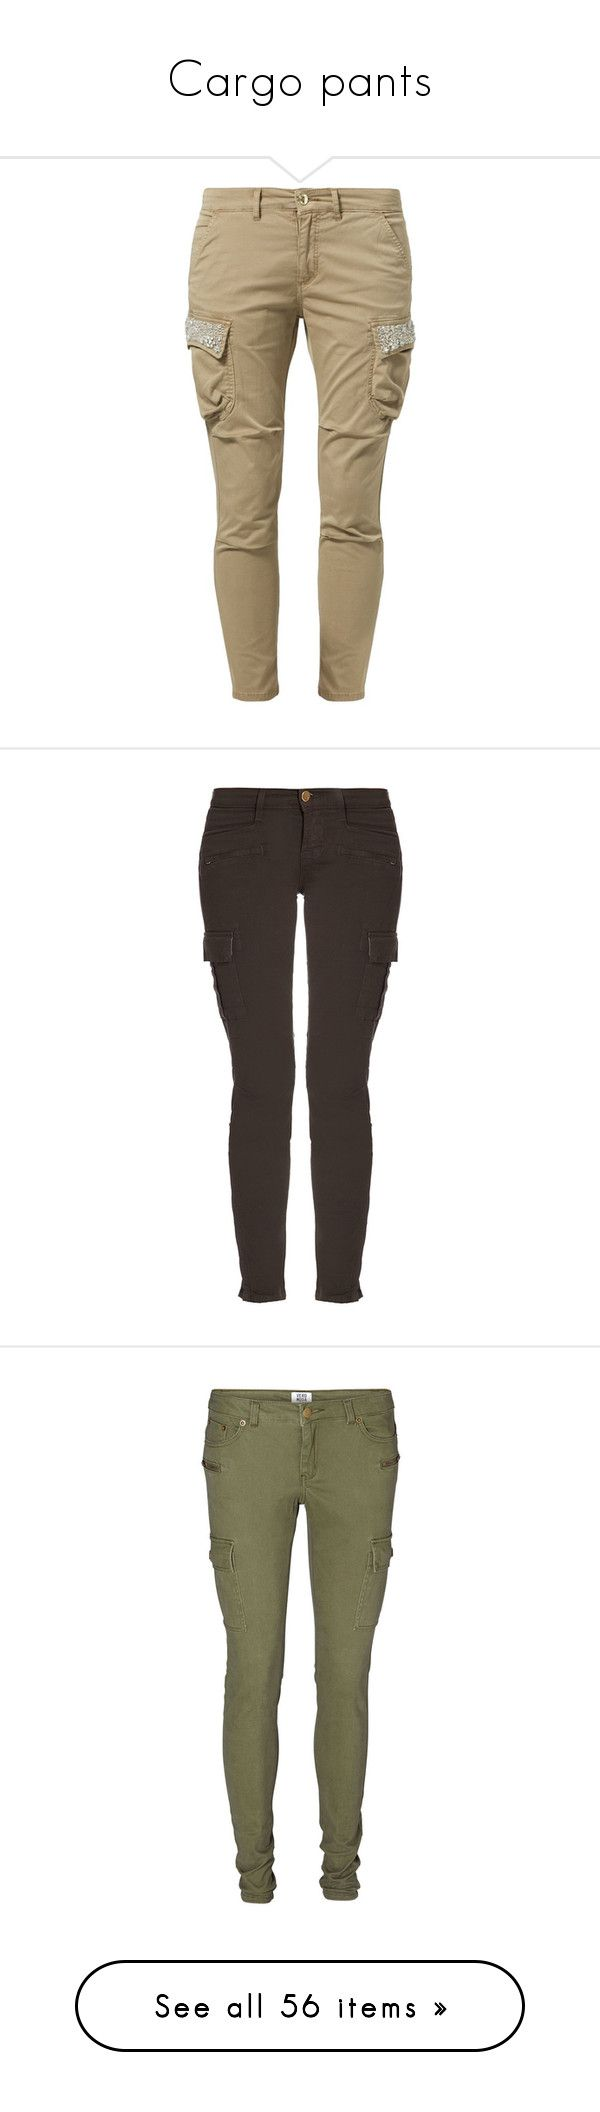 """Cargo pants"" by lydia-lee ❤ liked on Polyvore featuring pants, bottoms, jeans, pantalon, trousers, beige, brown pants, cargo pants, pocket pants and tall pants"